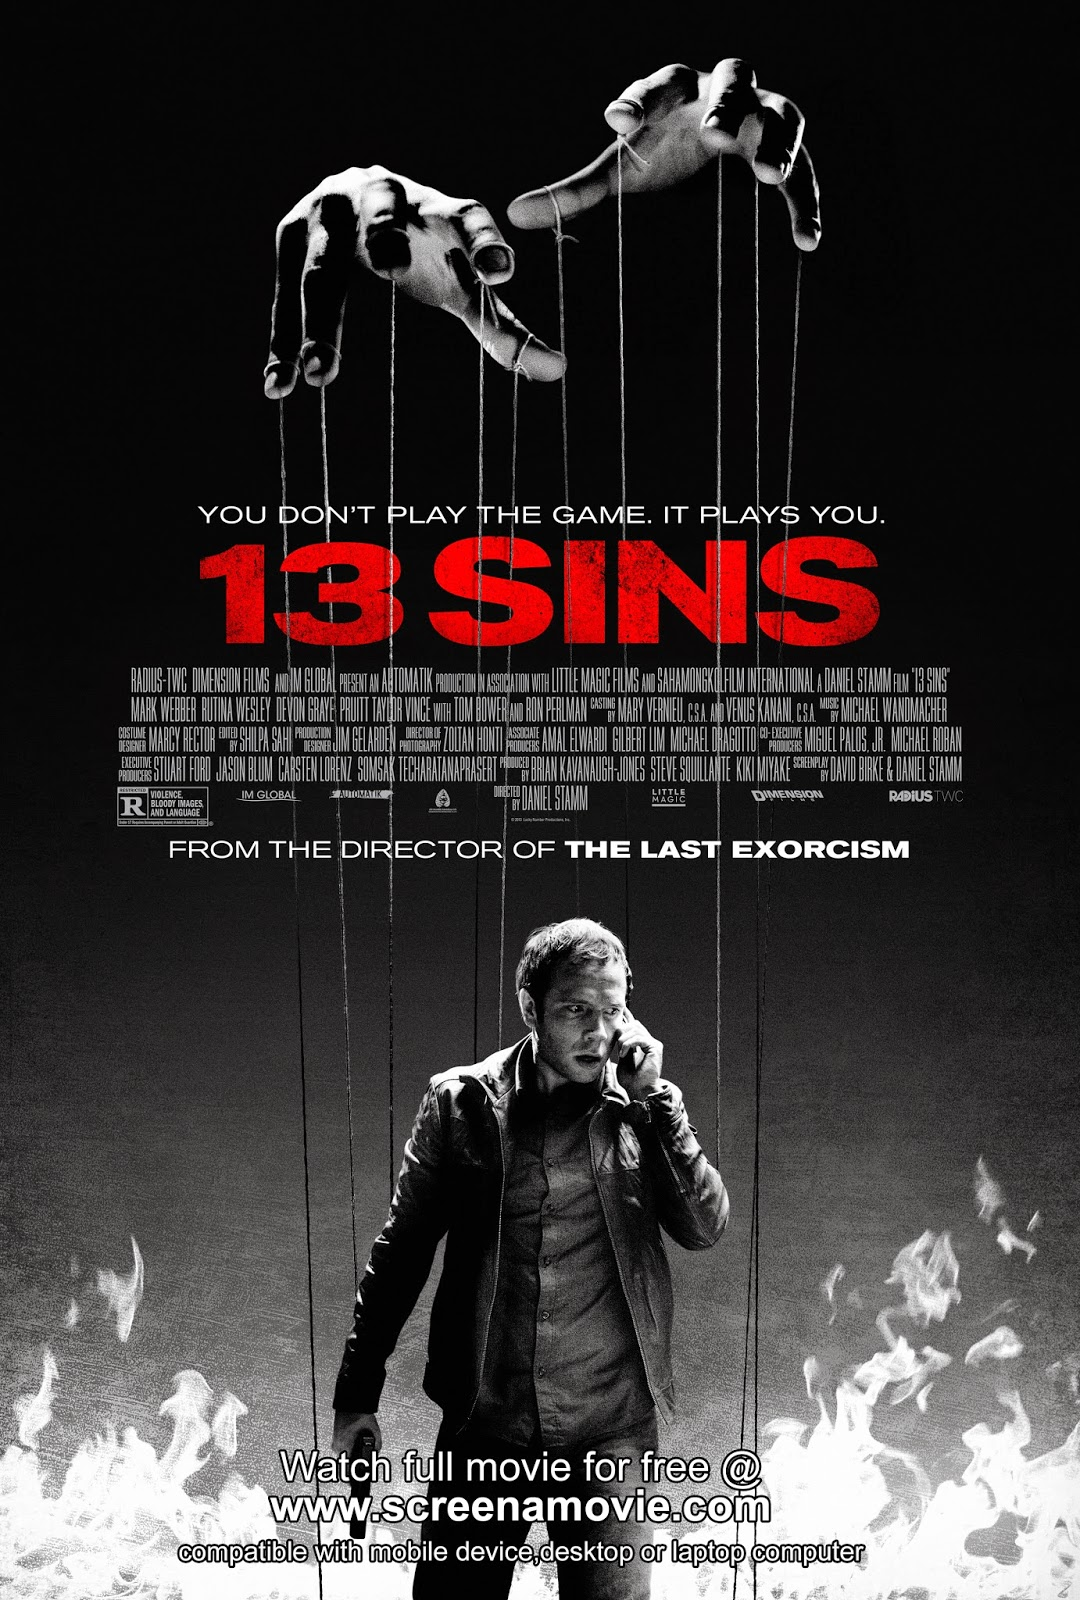 13 Sins_@screenamovie